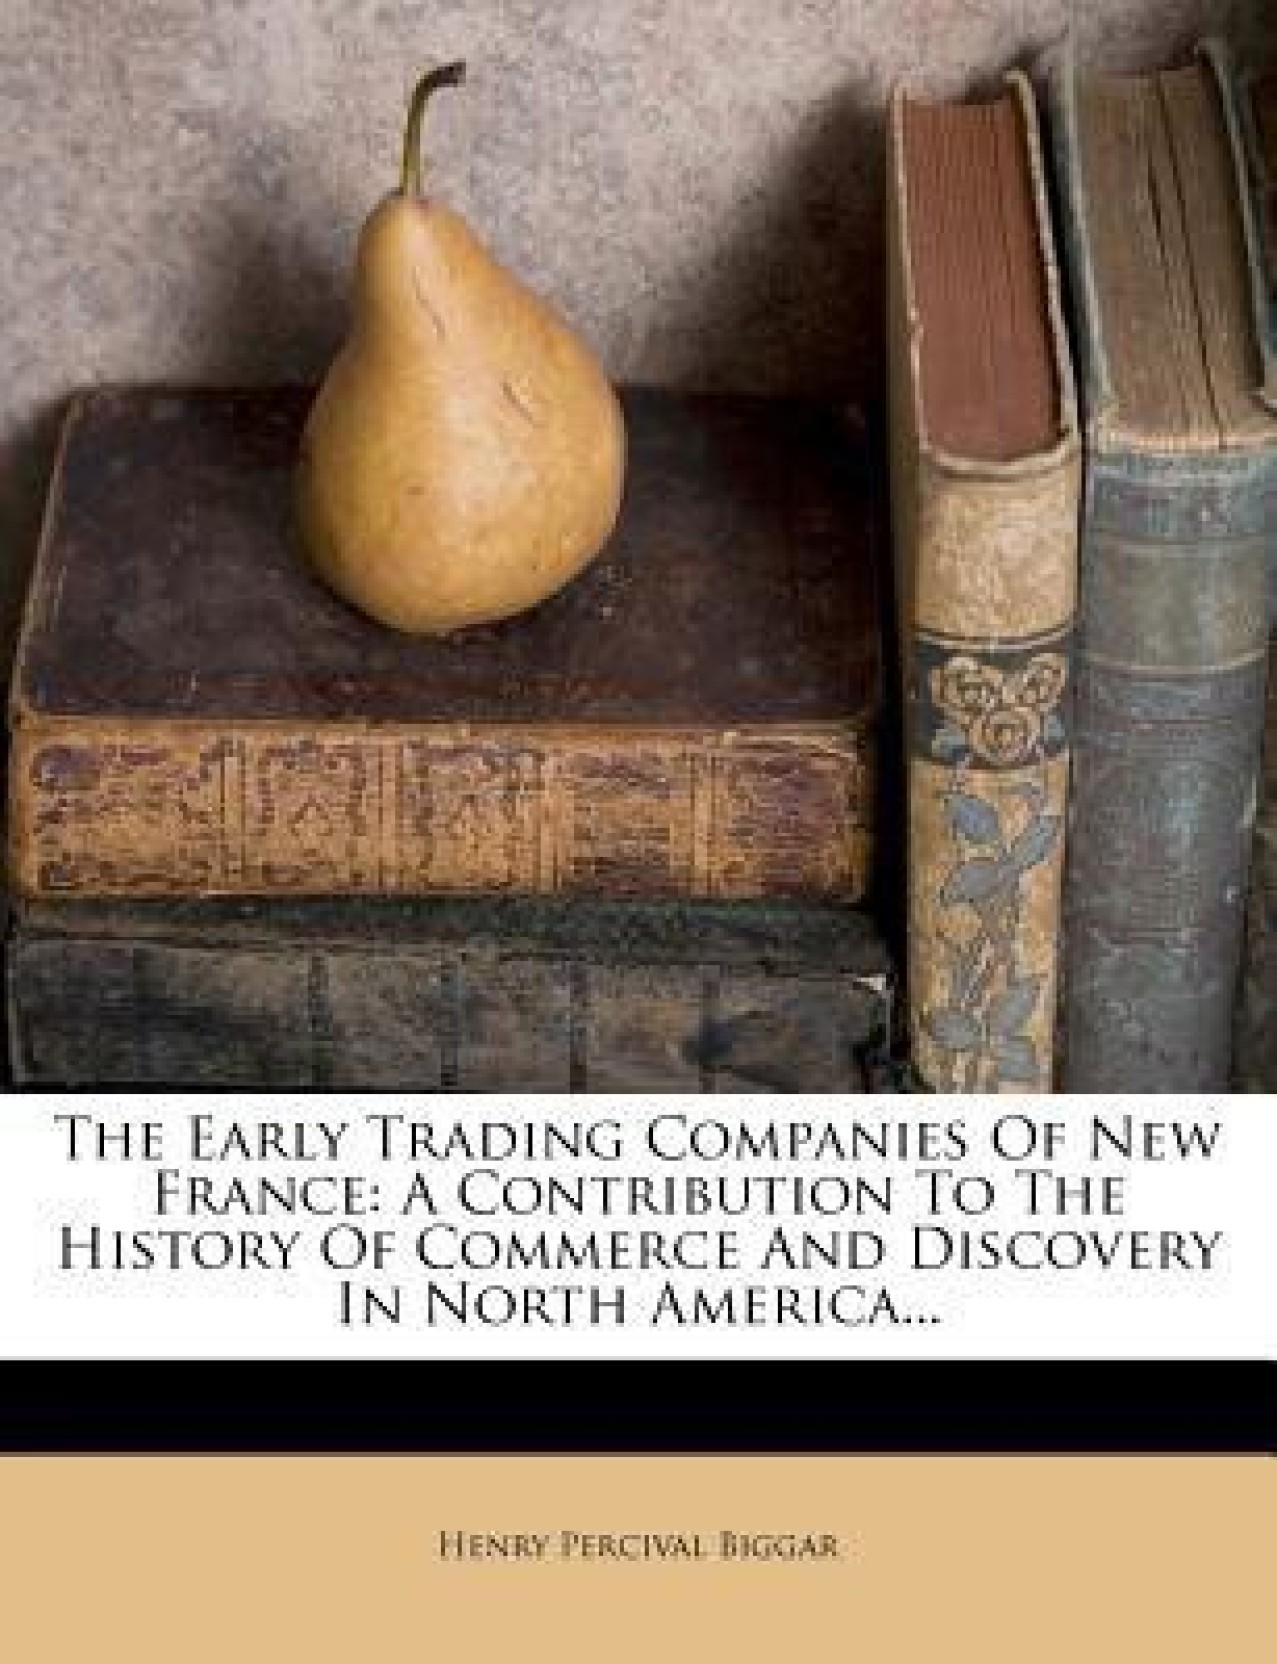 The Early Trading Companies of New France: A Contribution to